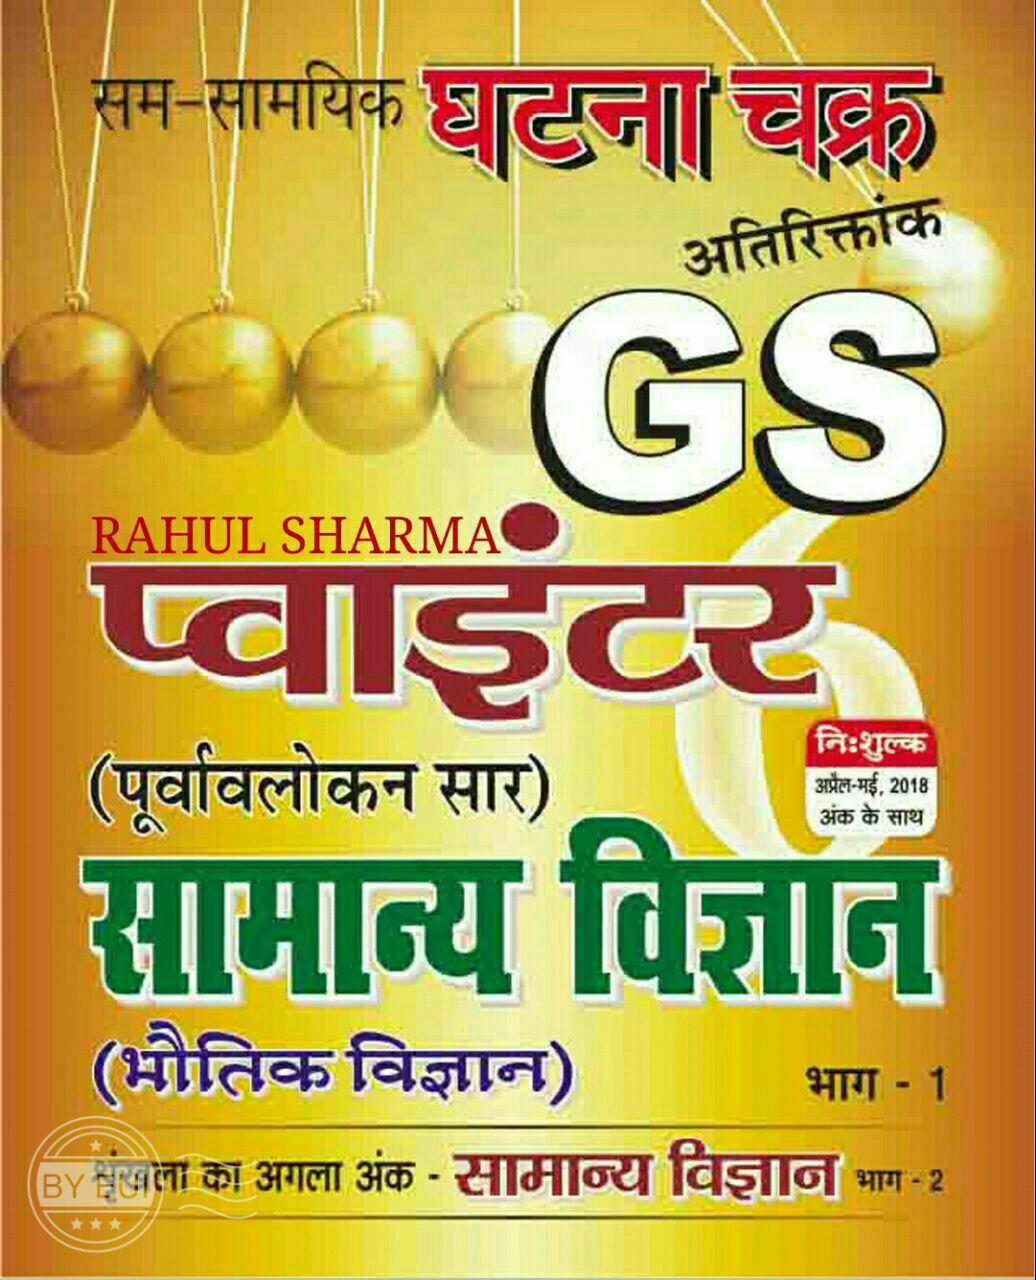 Physics Science Definition In Hindi: GHATNA CHAKRA GS POINTER SCIENCE PDF PHYSICS IN HINDI